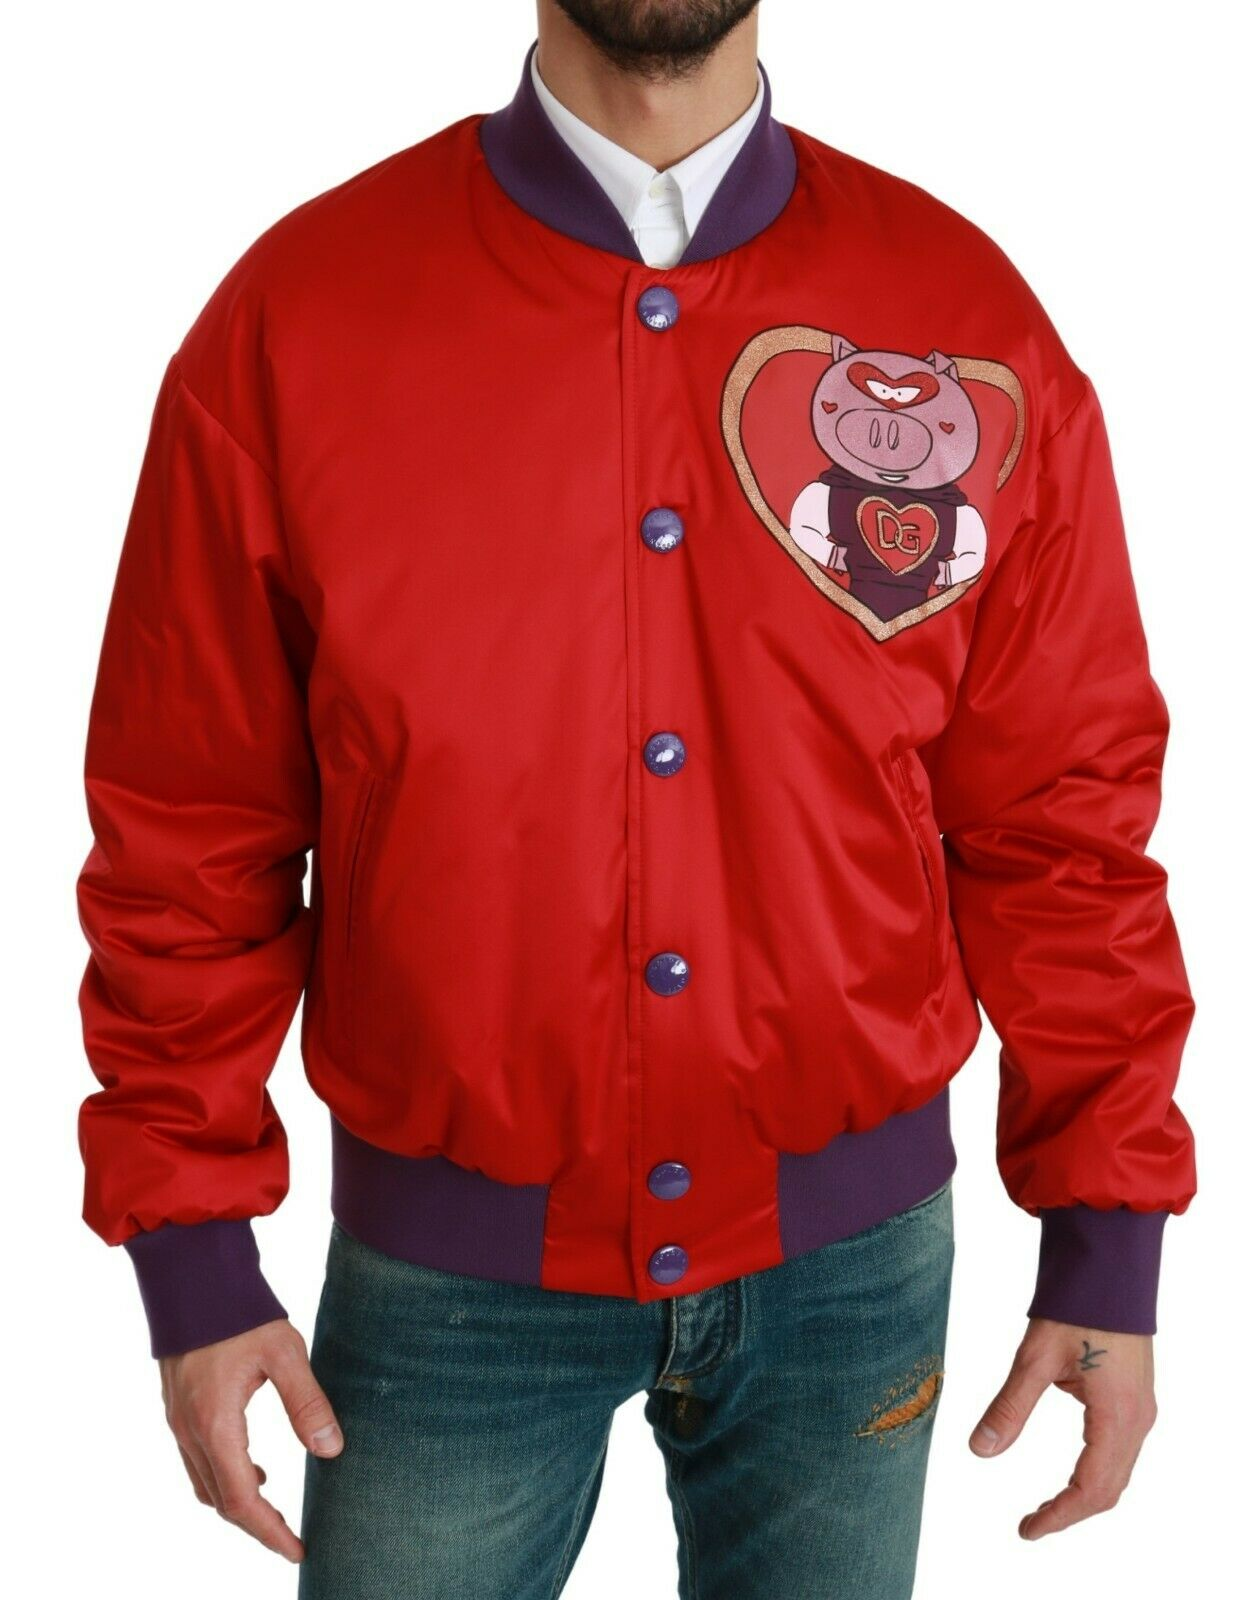 Dolce & Gabbana Men's YEAR OF THE PIG Bomber Jacket Red JKT2610 - IT44 | XS